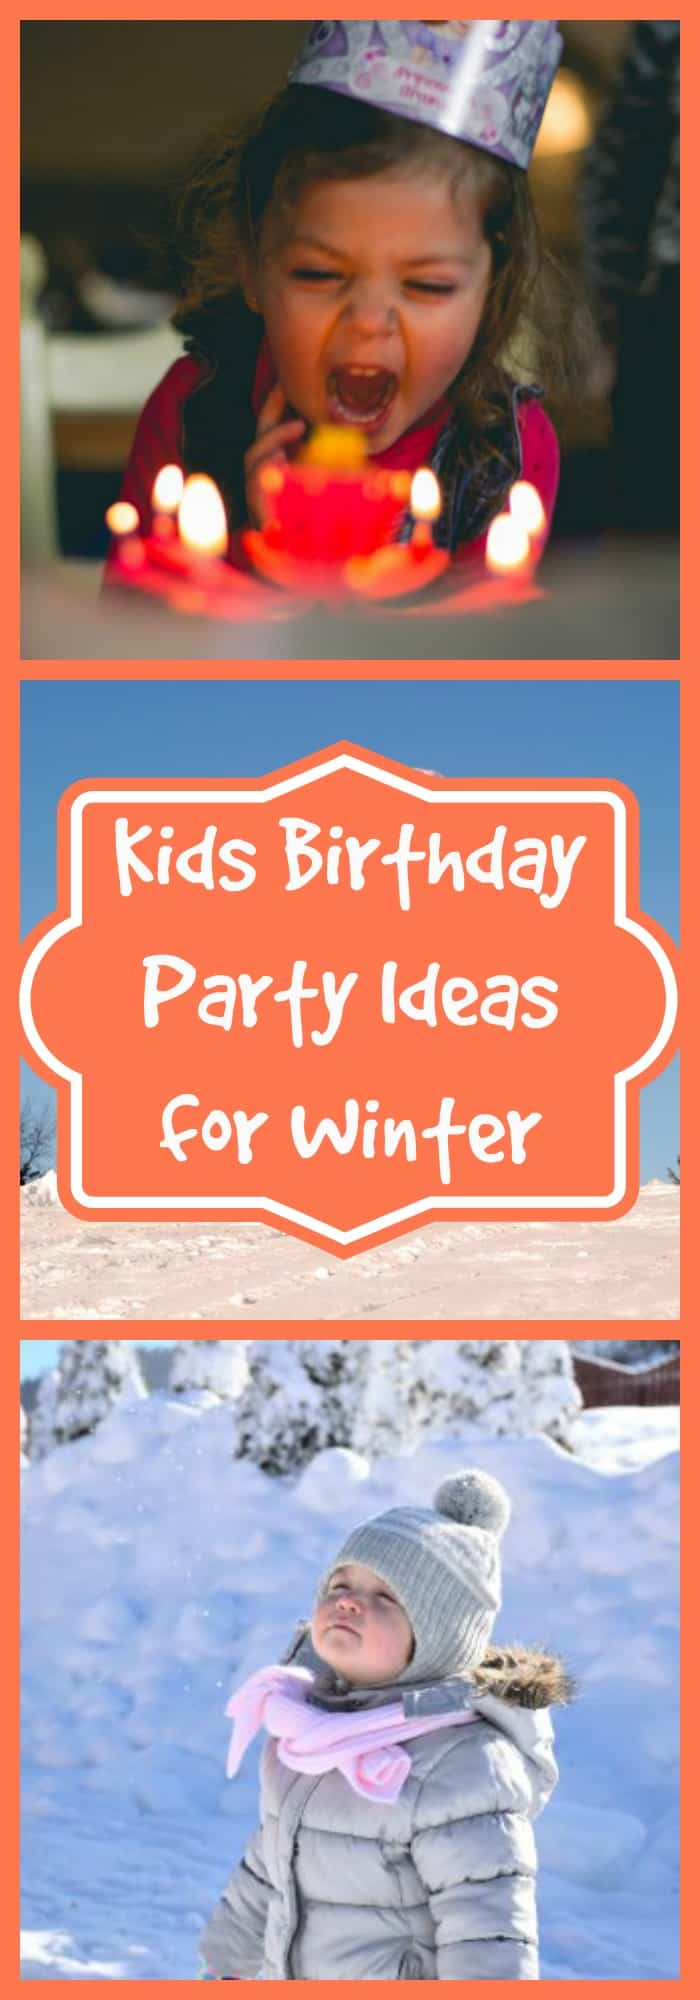 Kids Birthday Party Ideas for Winter